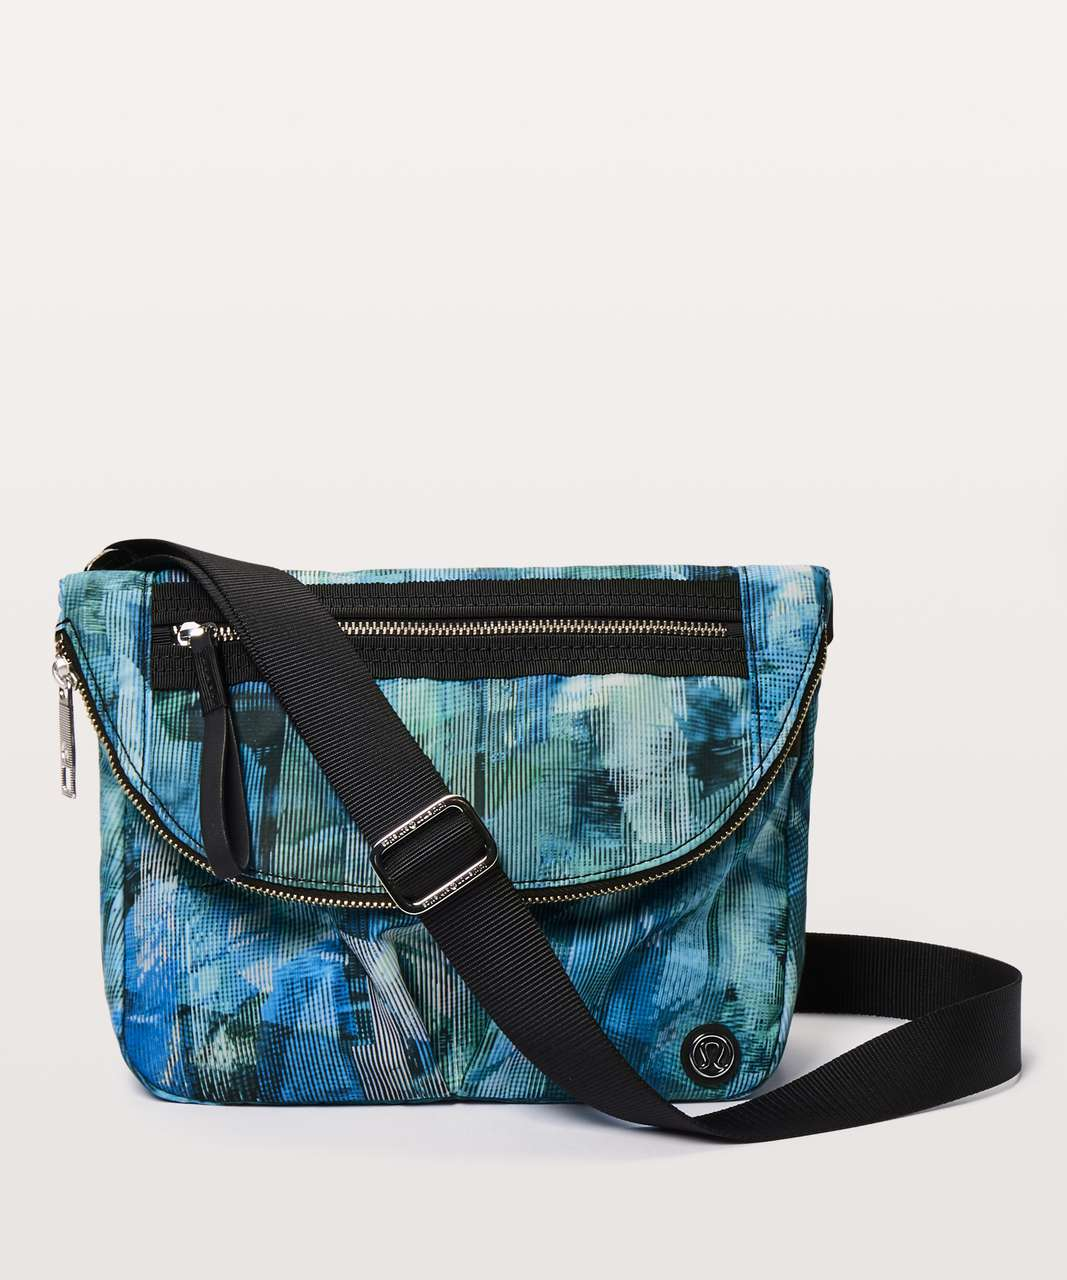 Lululemon Festival Bag II *5L - Sun Dazed Multi Blue / Black